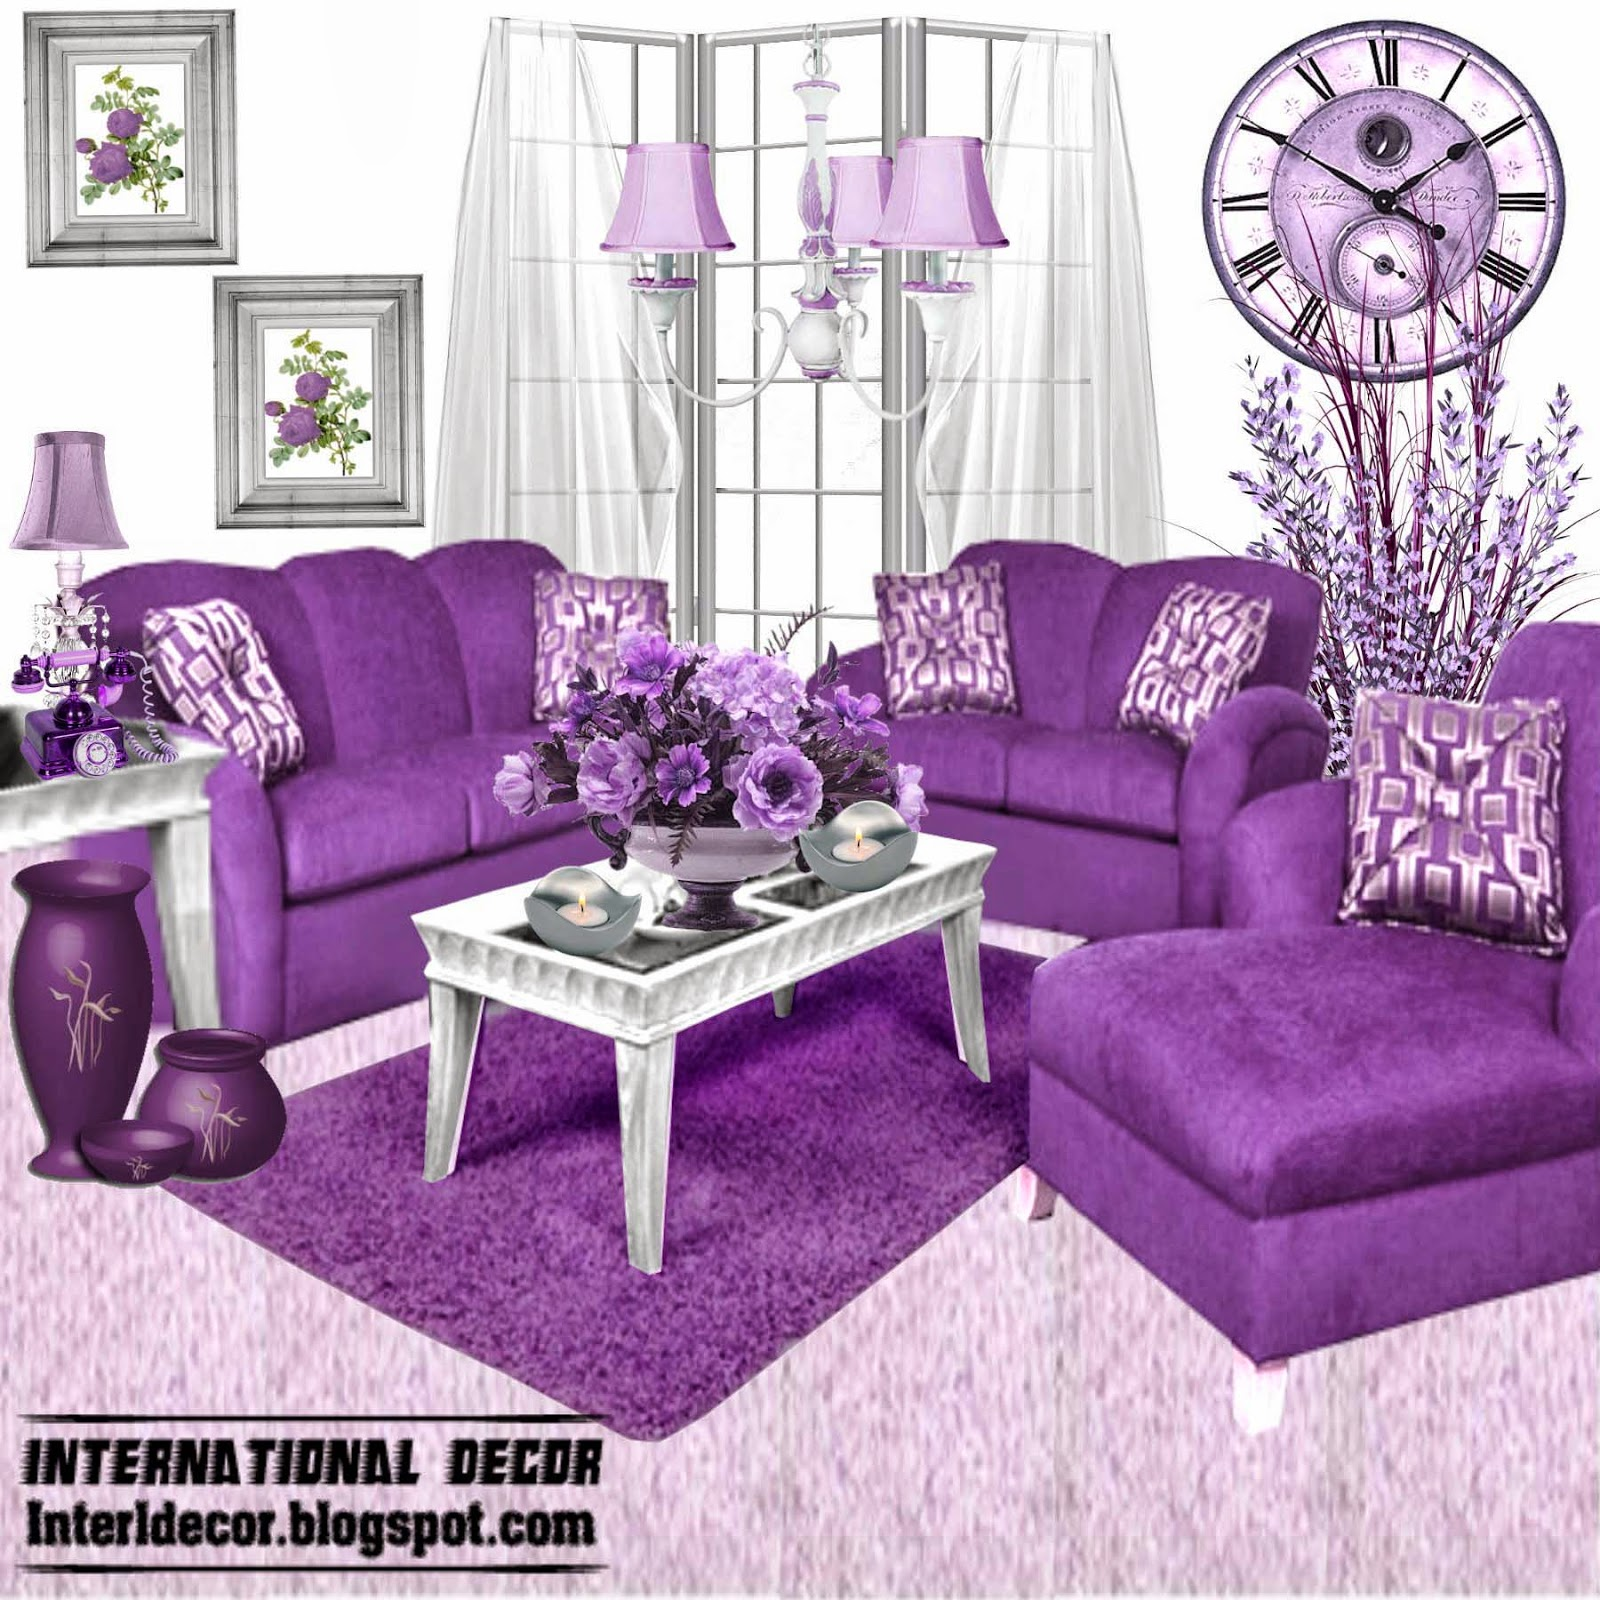 Luxury purple furniture sets sofas chairs for living for Living room ideas purple